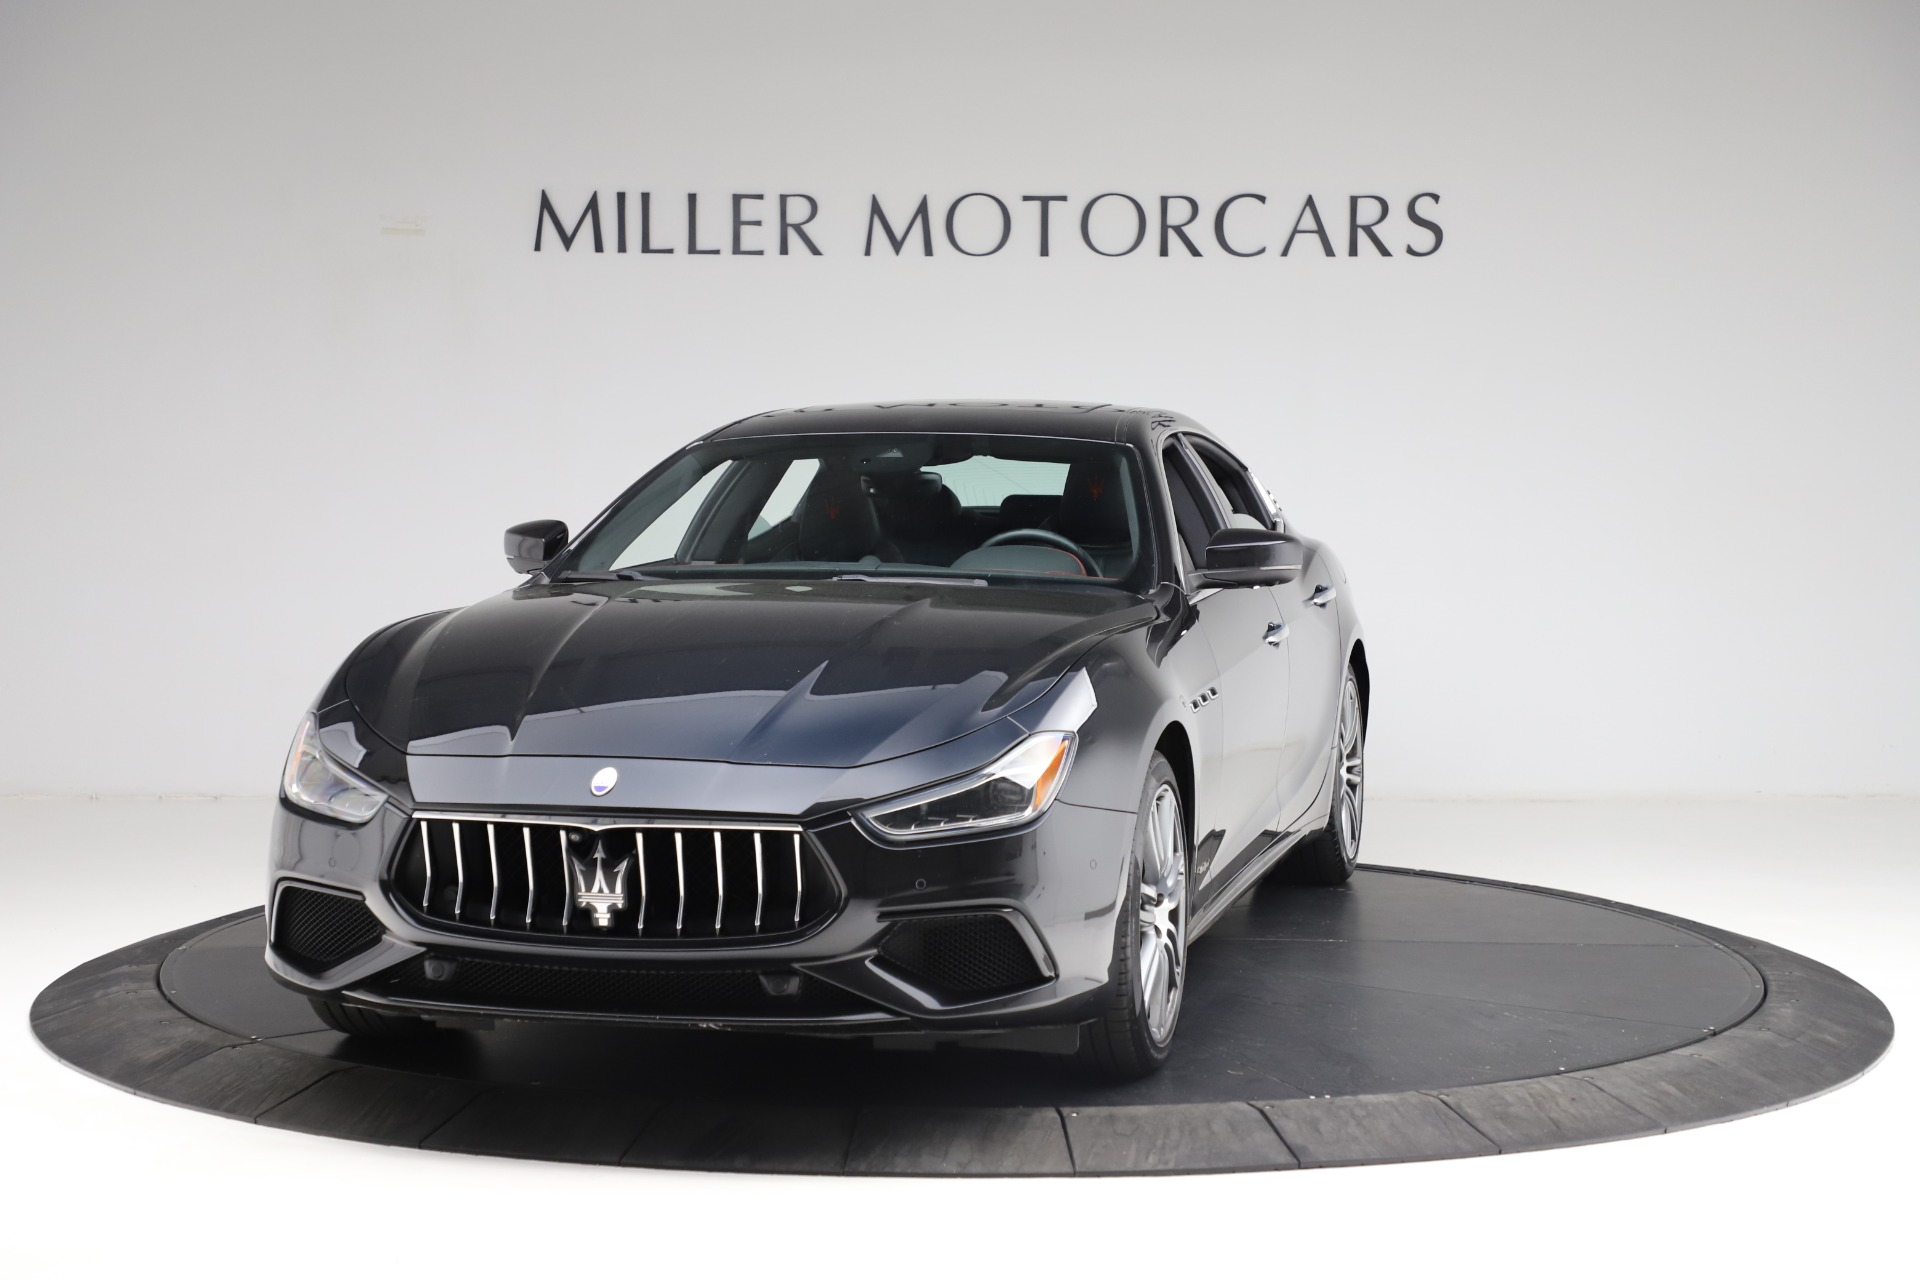 Used 2018 Maserati Ghibli S Q4 Gransport for sale $55,900 at Bentley Greenwich in Greenwich CT 06830 1